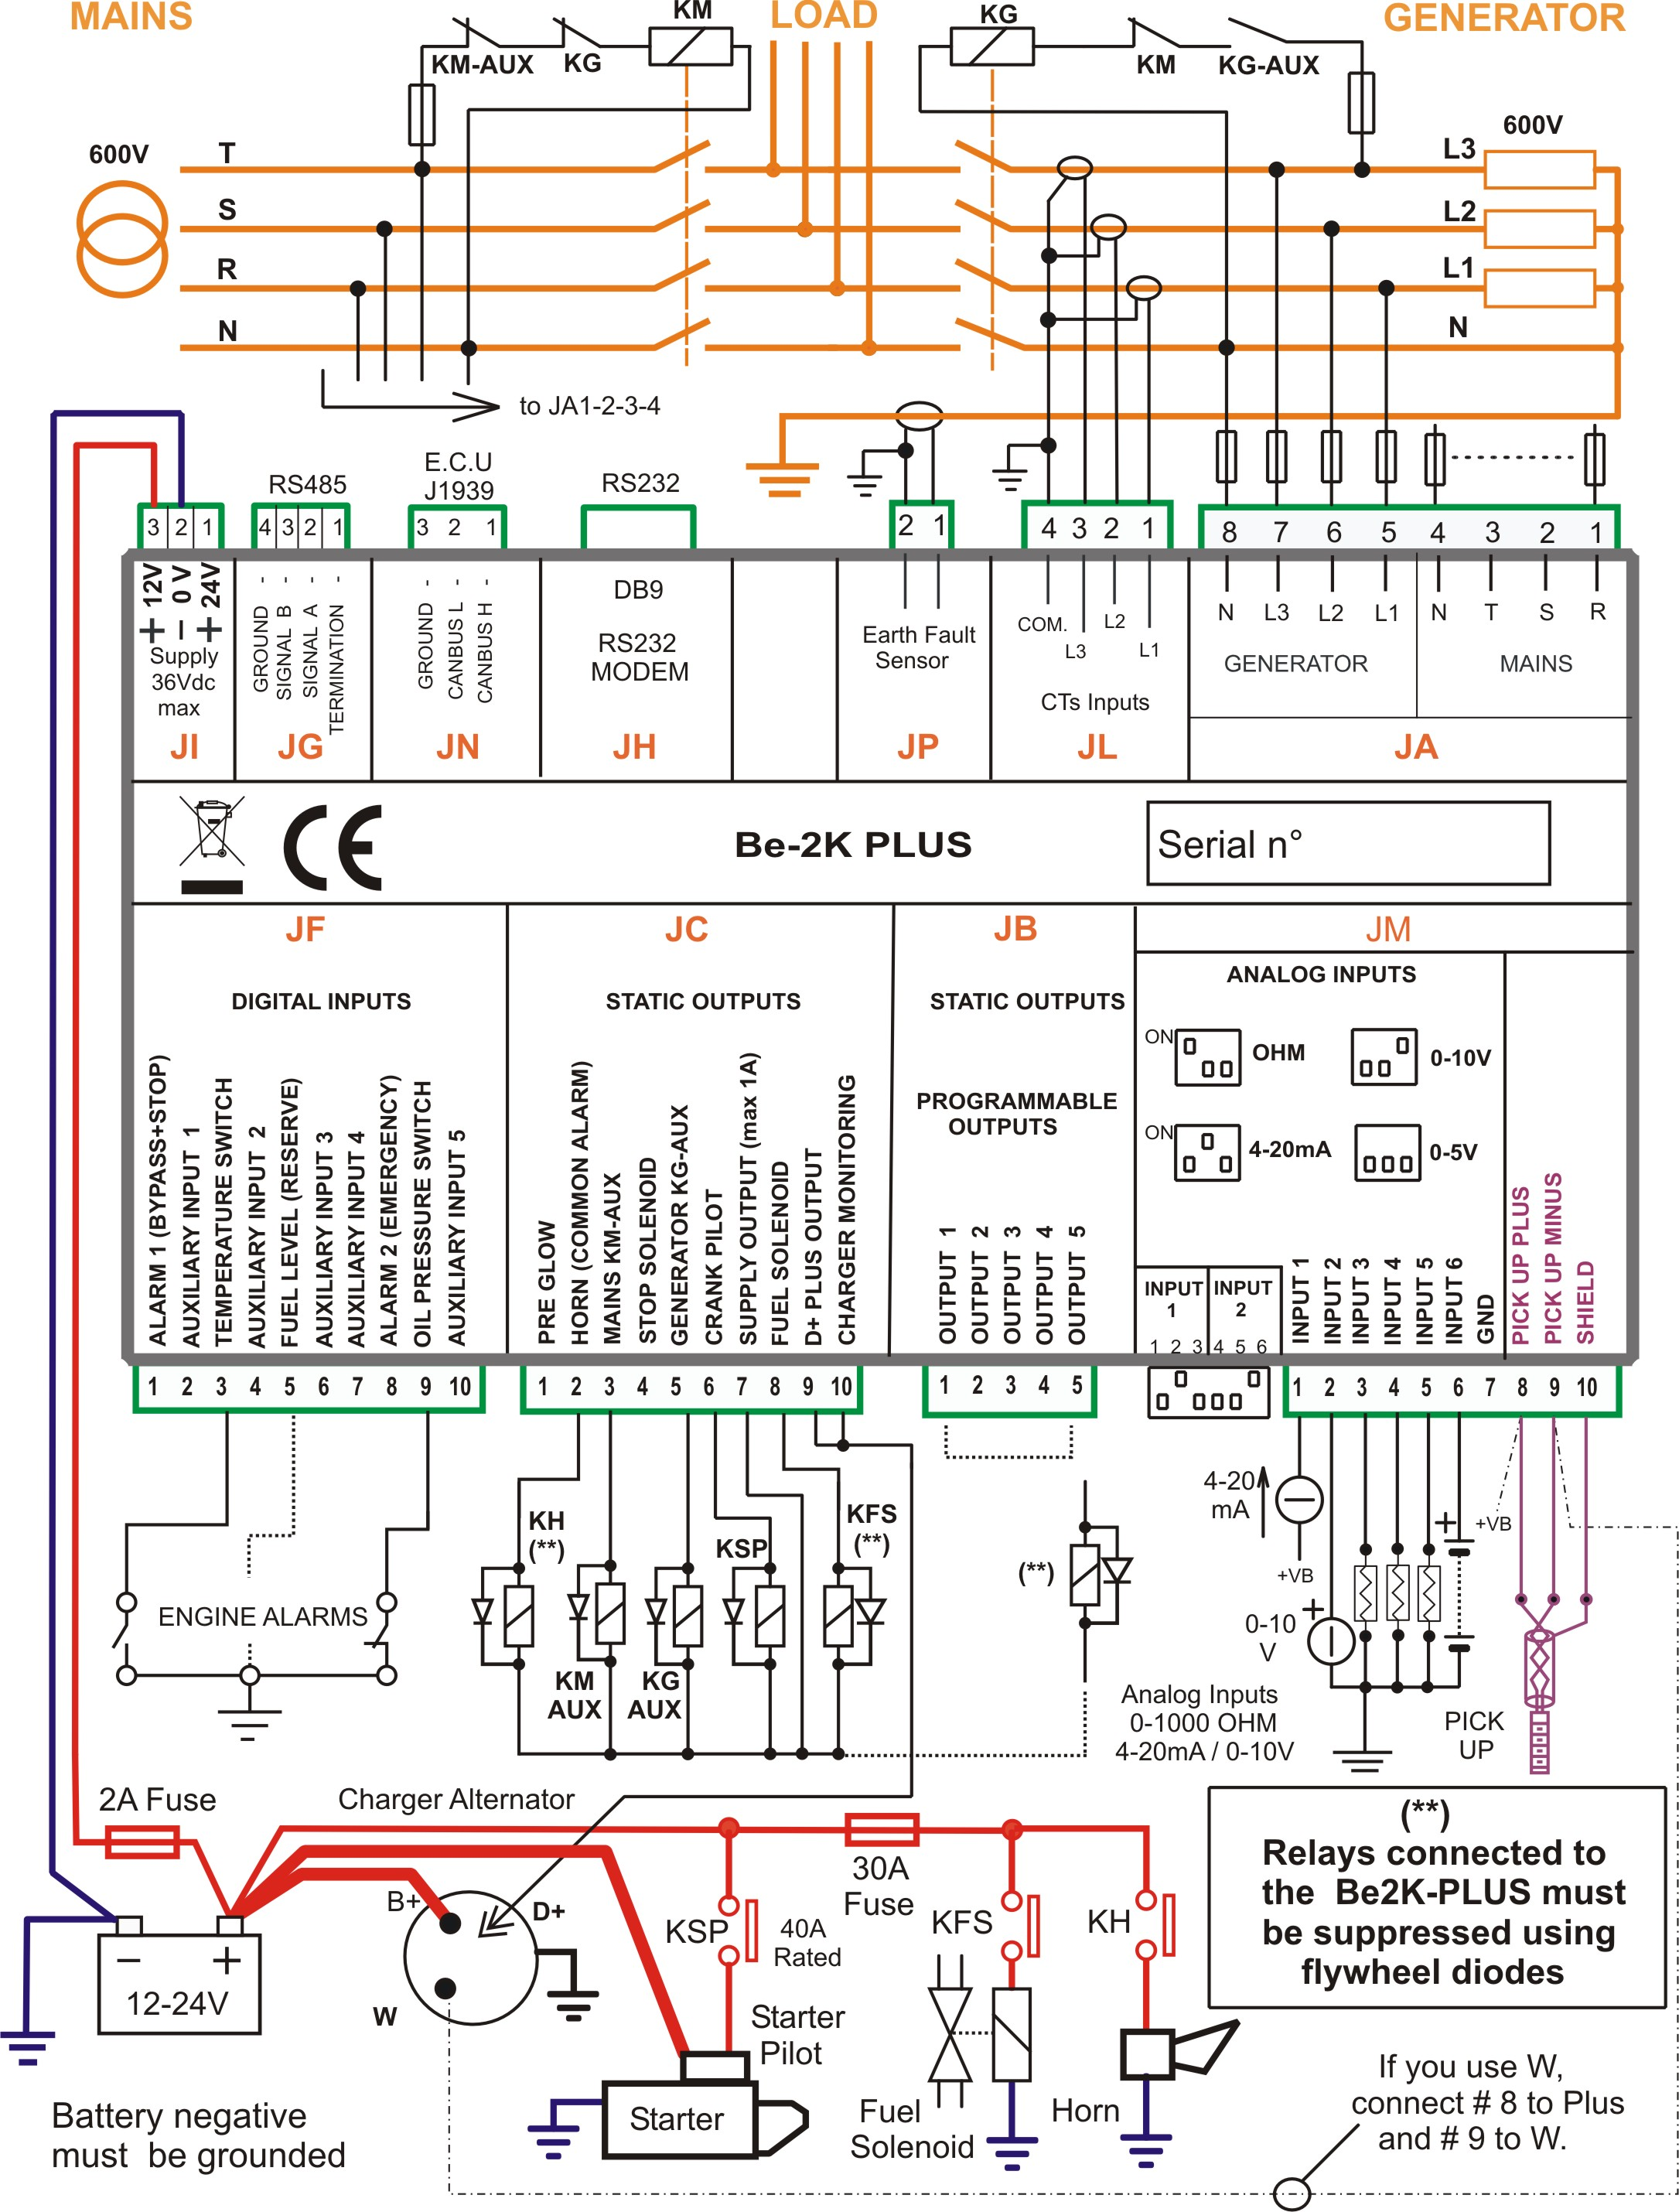 AMF panel control wiring amf panel control wiring genset controller oil failure control wiring diagram at n-0.co